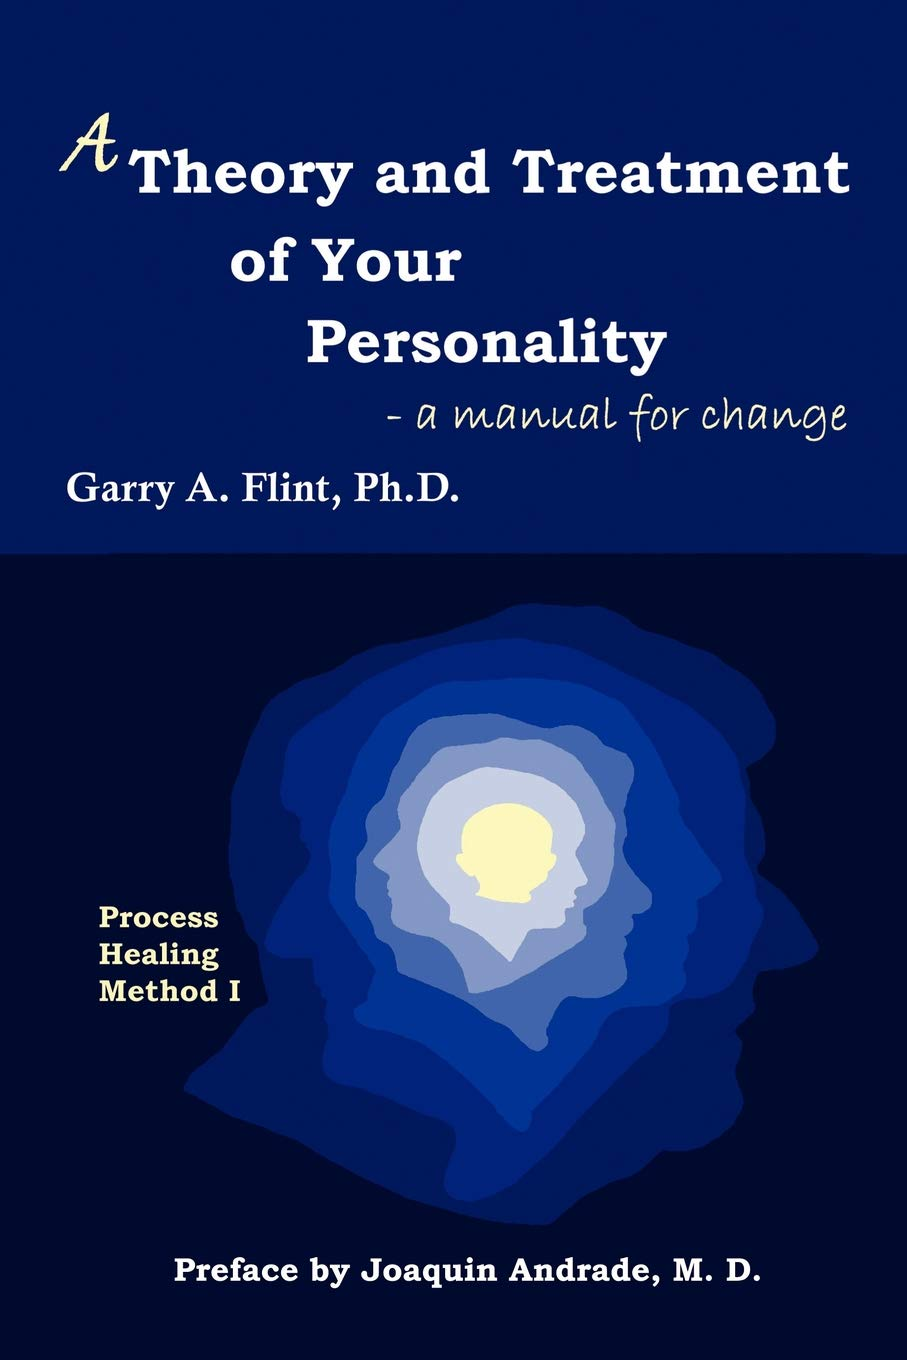 A Theory and Treatment of Your Personality: a